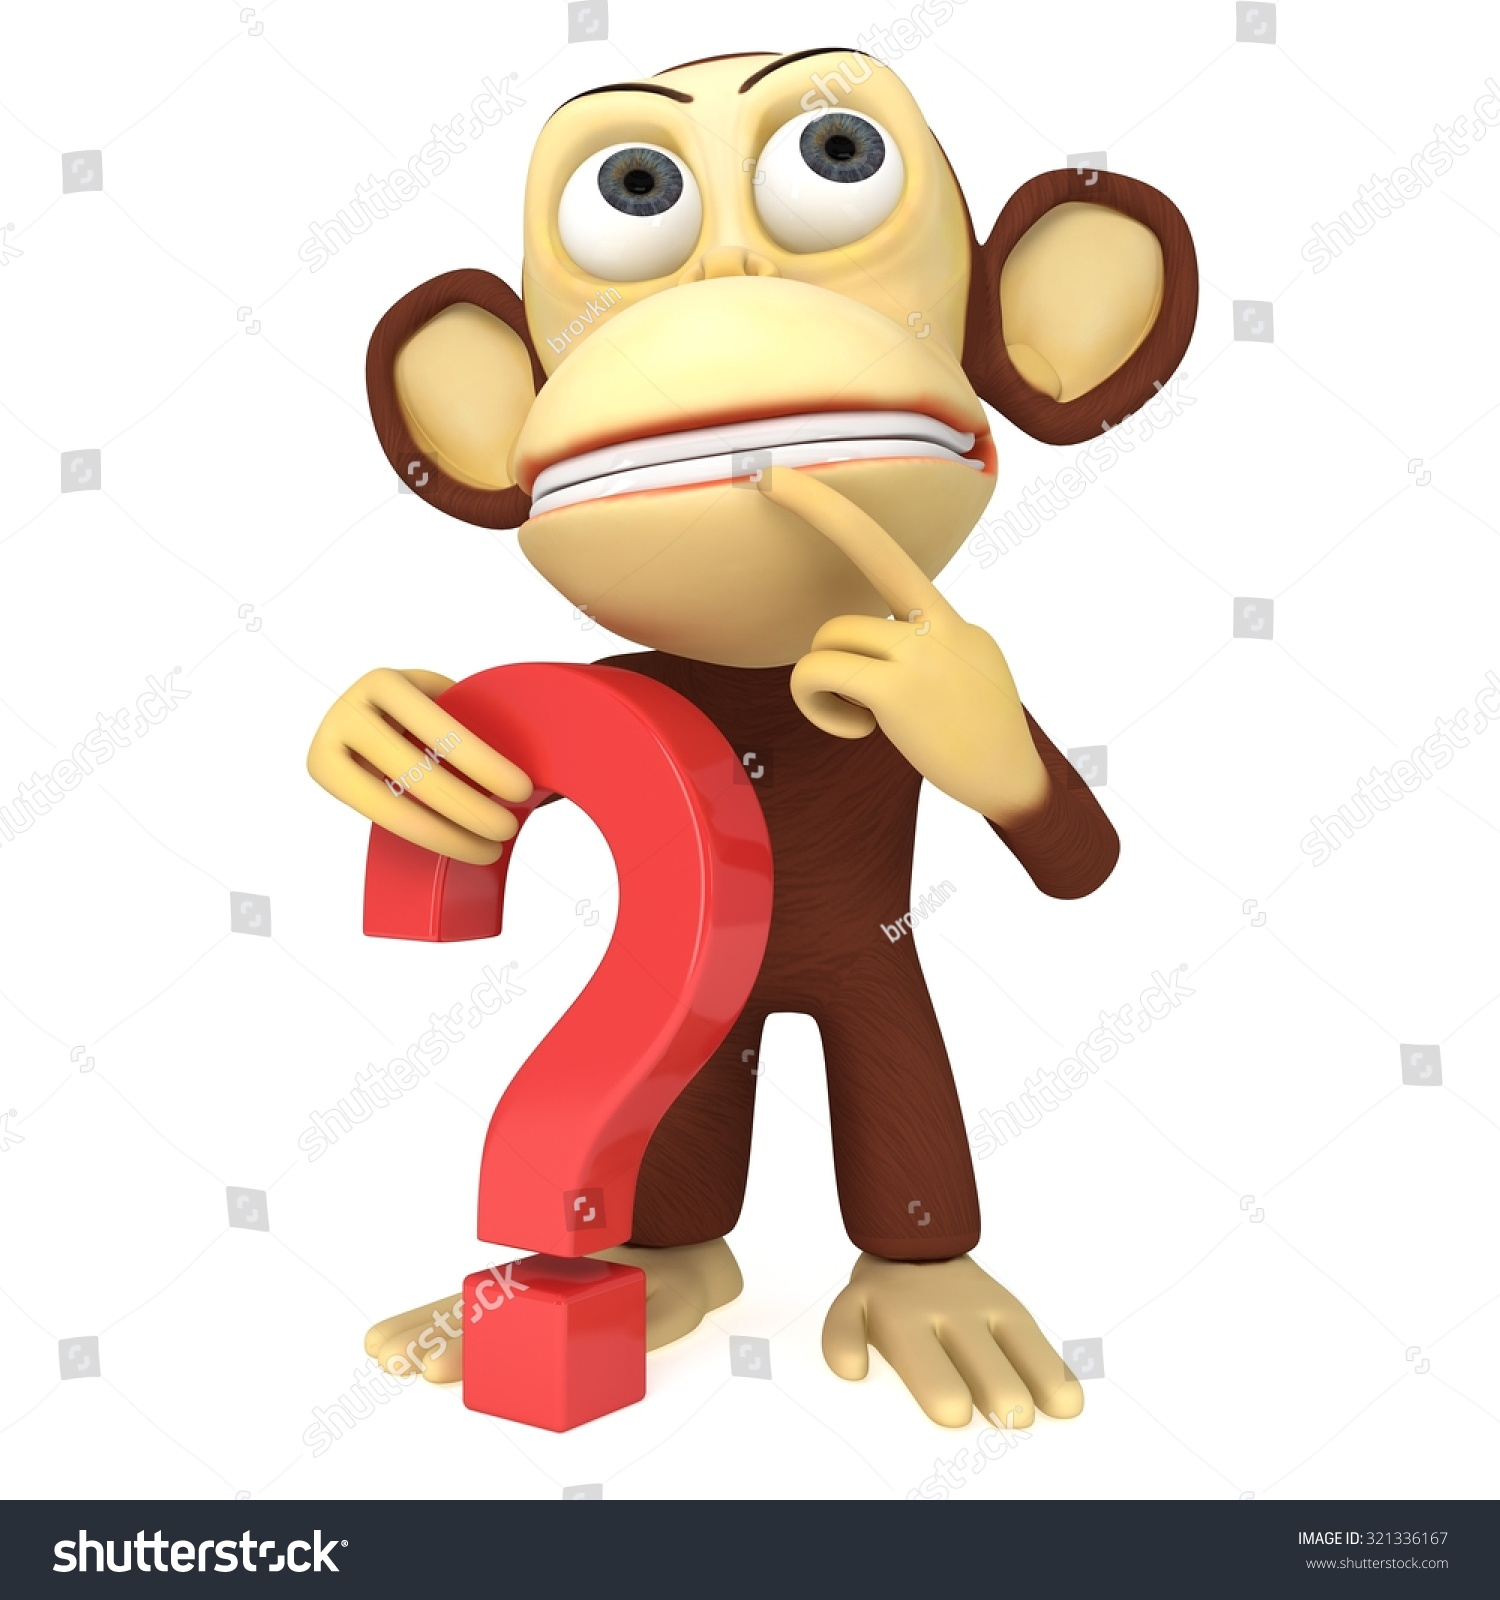 Pics photos clip art cartoon scientist with question mark stock - Stock Photo D Funny Monkey With Red Question Mark D Render Isolated On White Jpg 1500x1600